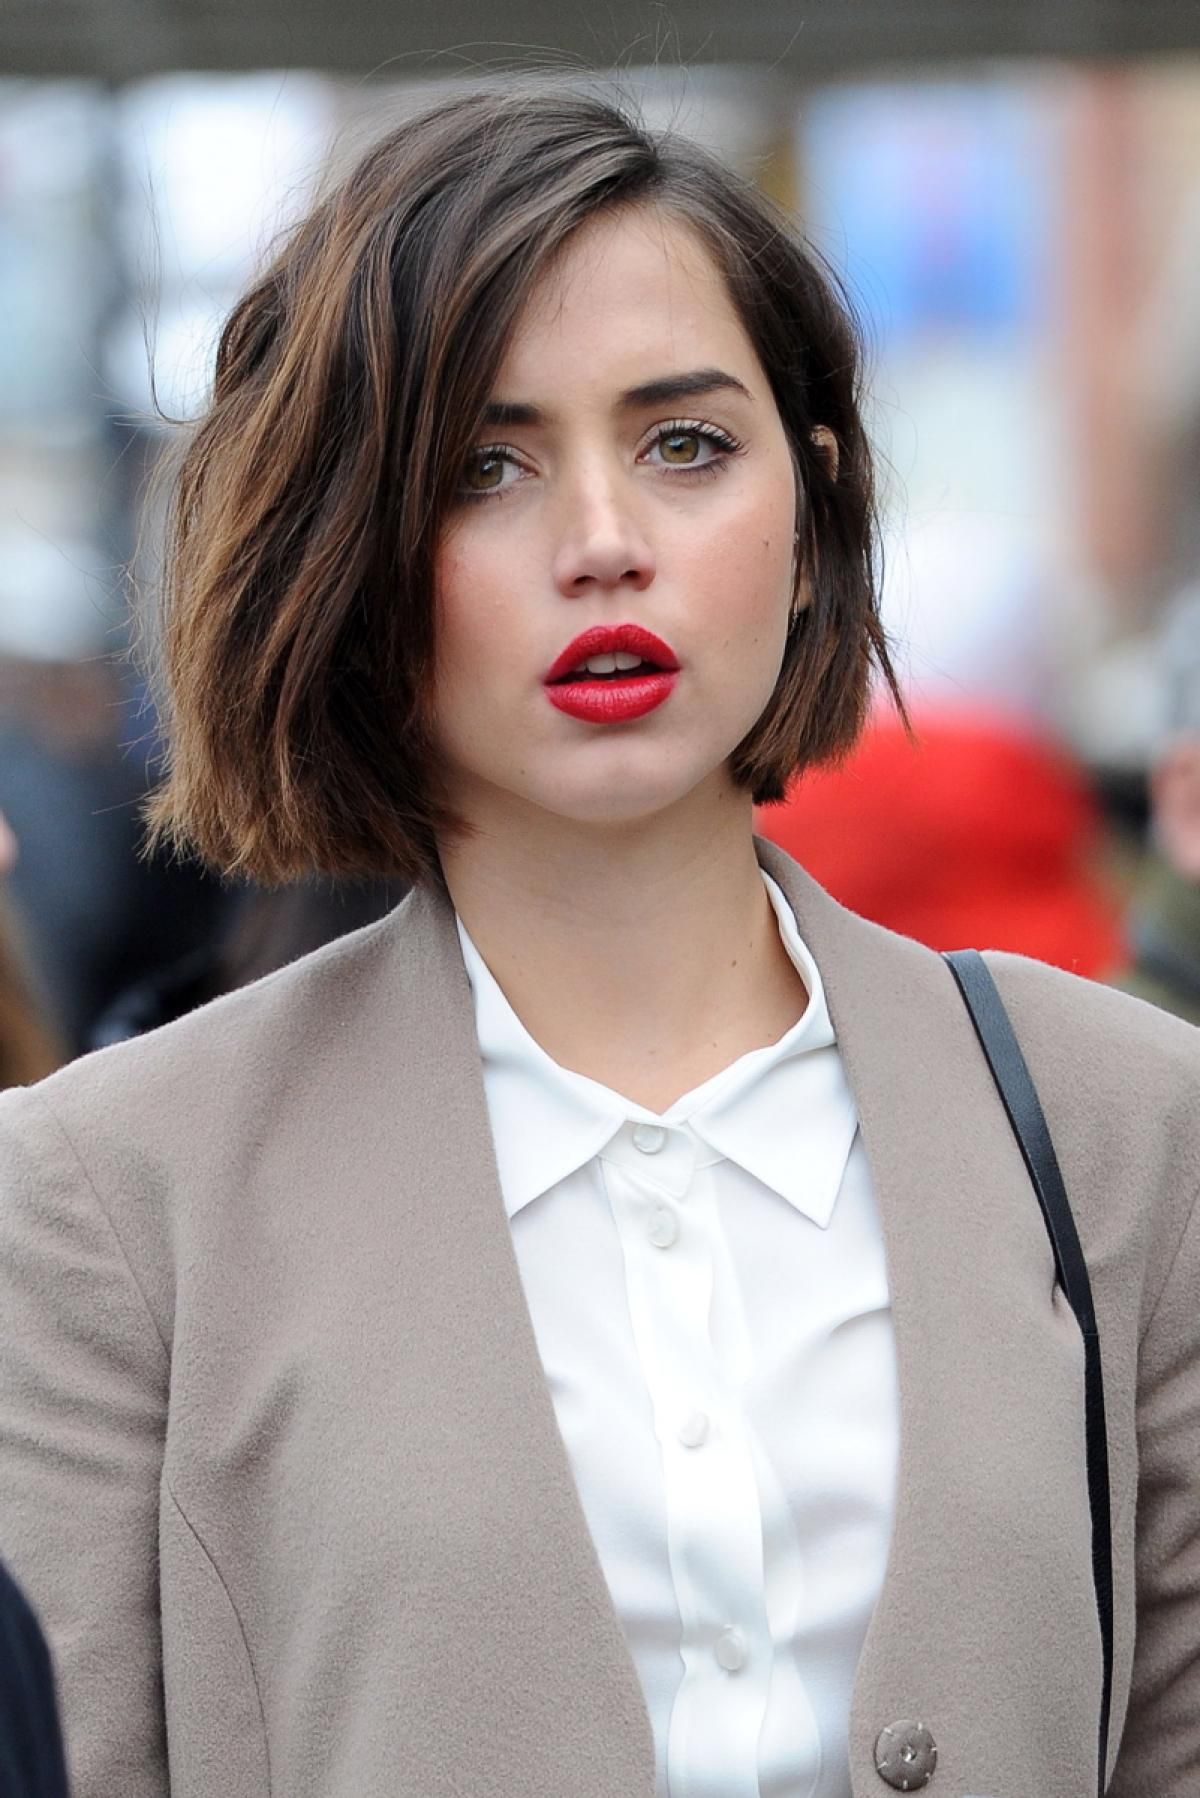 Ana de Armas earned a  million dollar salary, leaving the net worth at 3 million in 2017